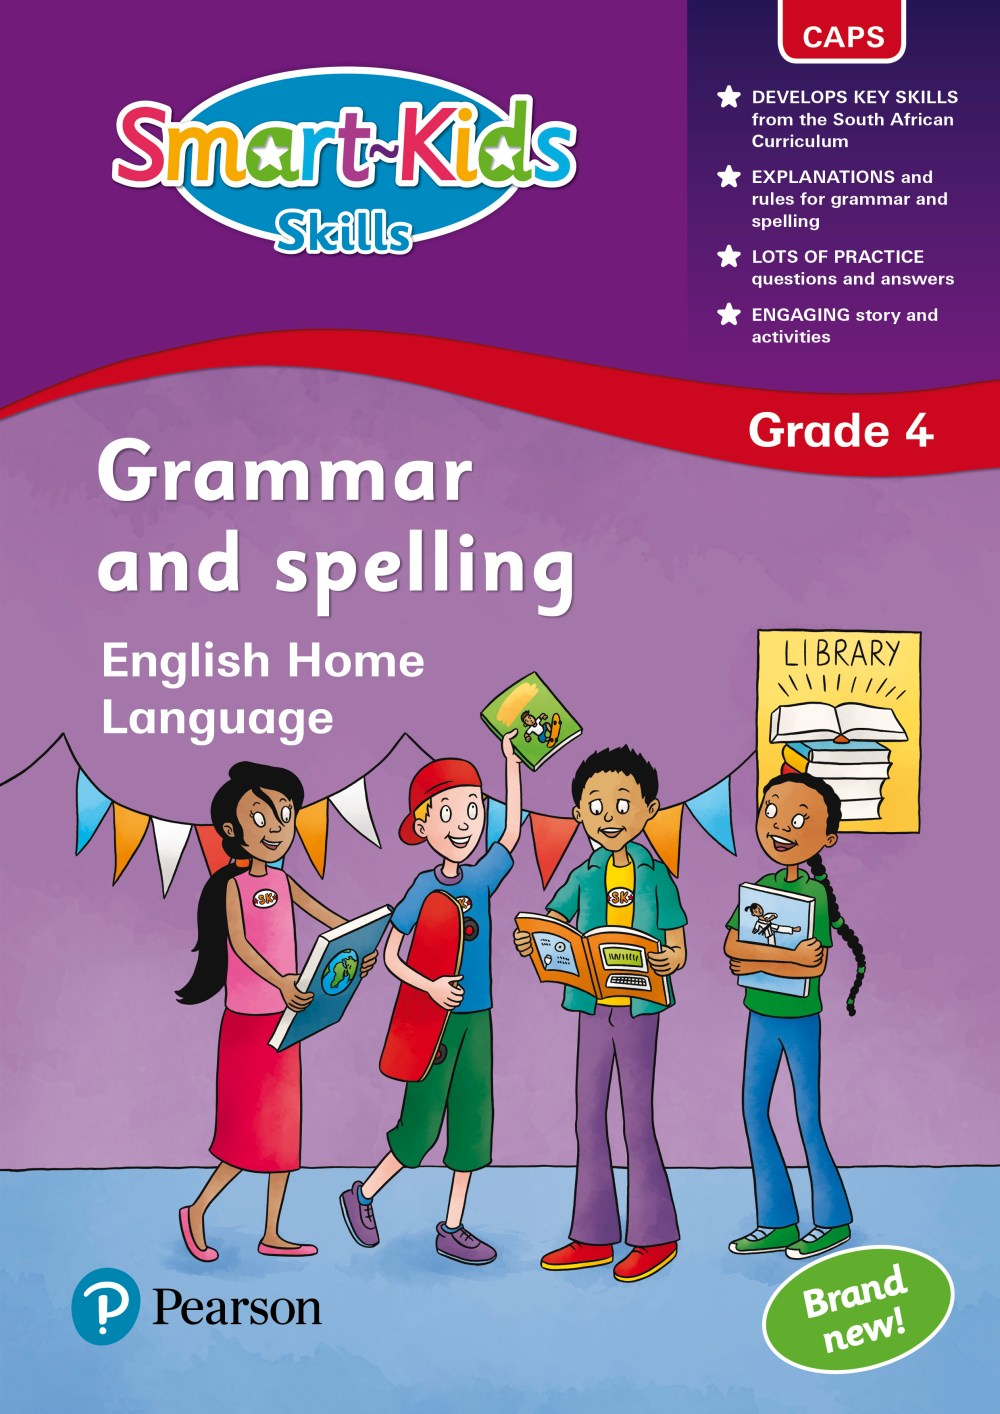 medium resolution of Smart-Kids Skills Grammar and Spelling Grade 4   Smartkids